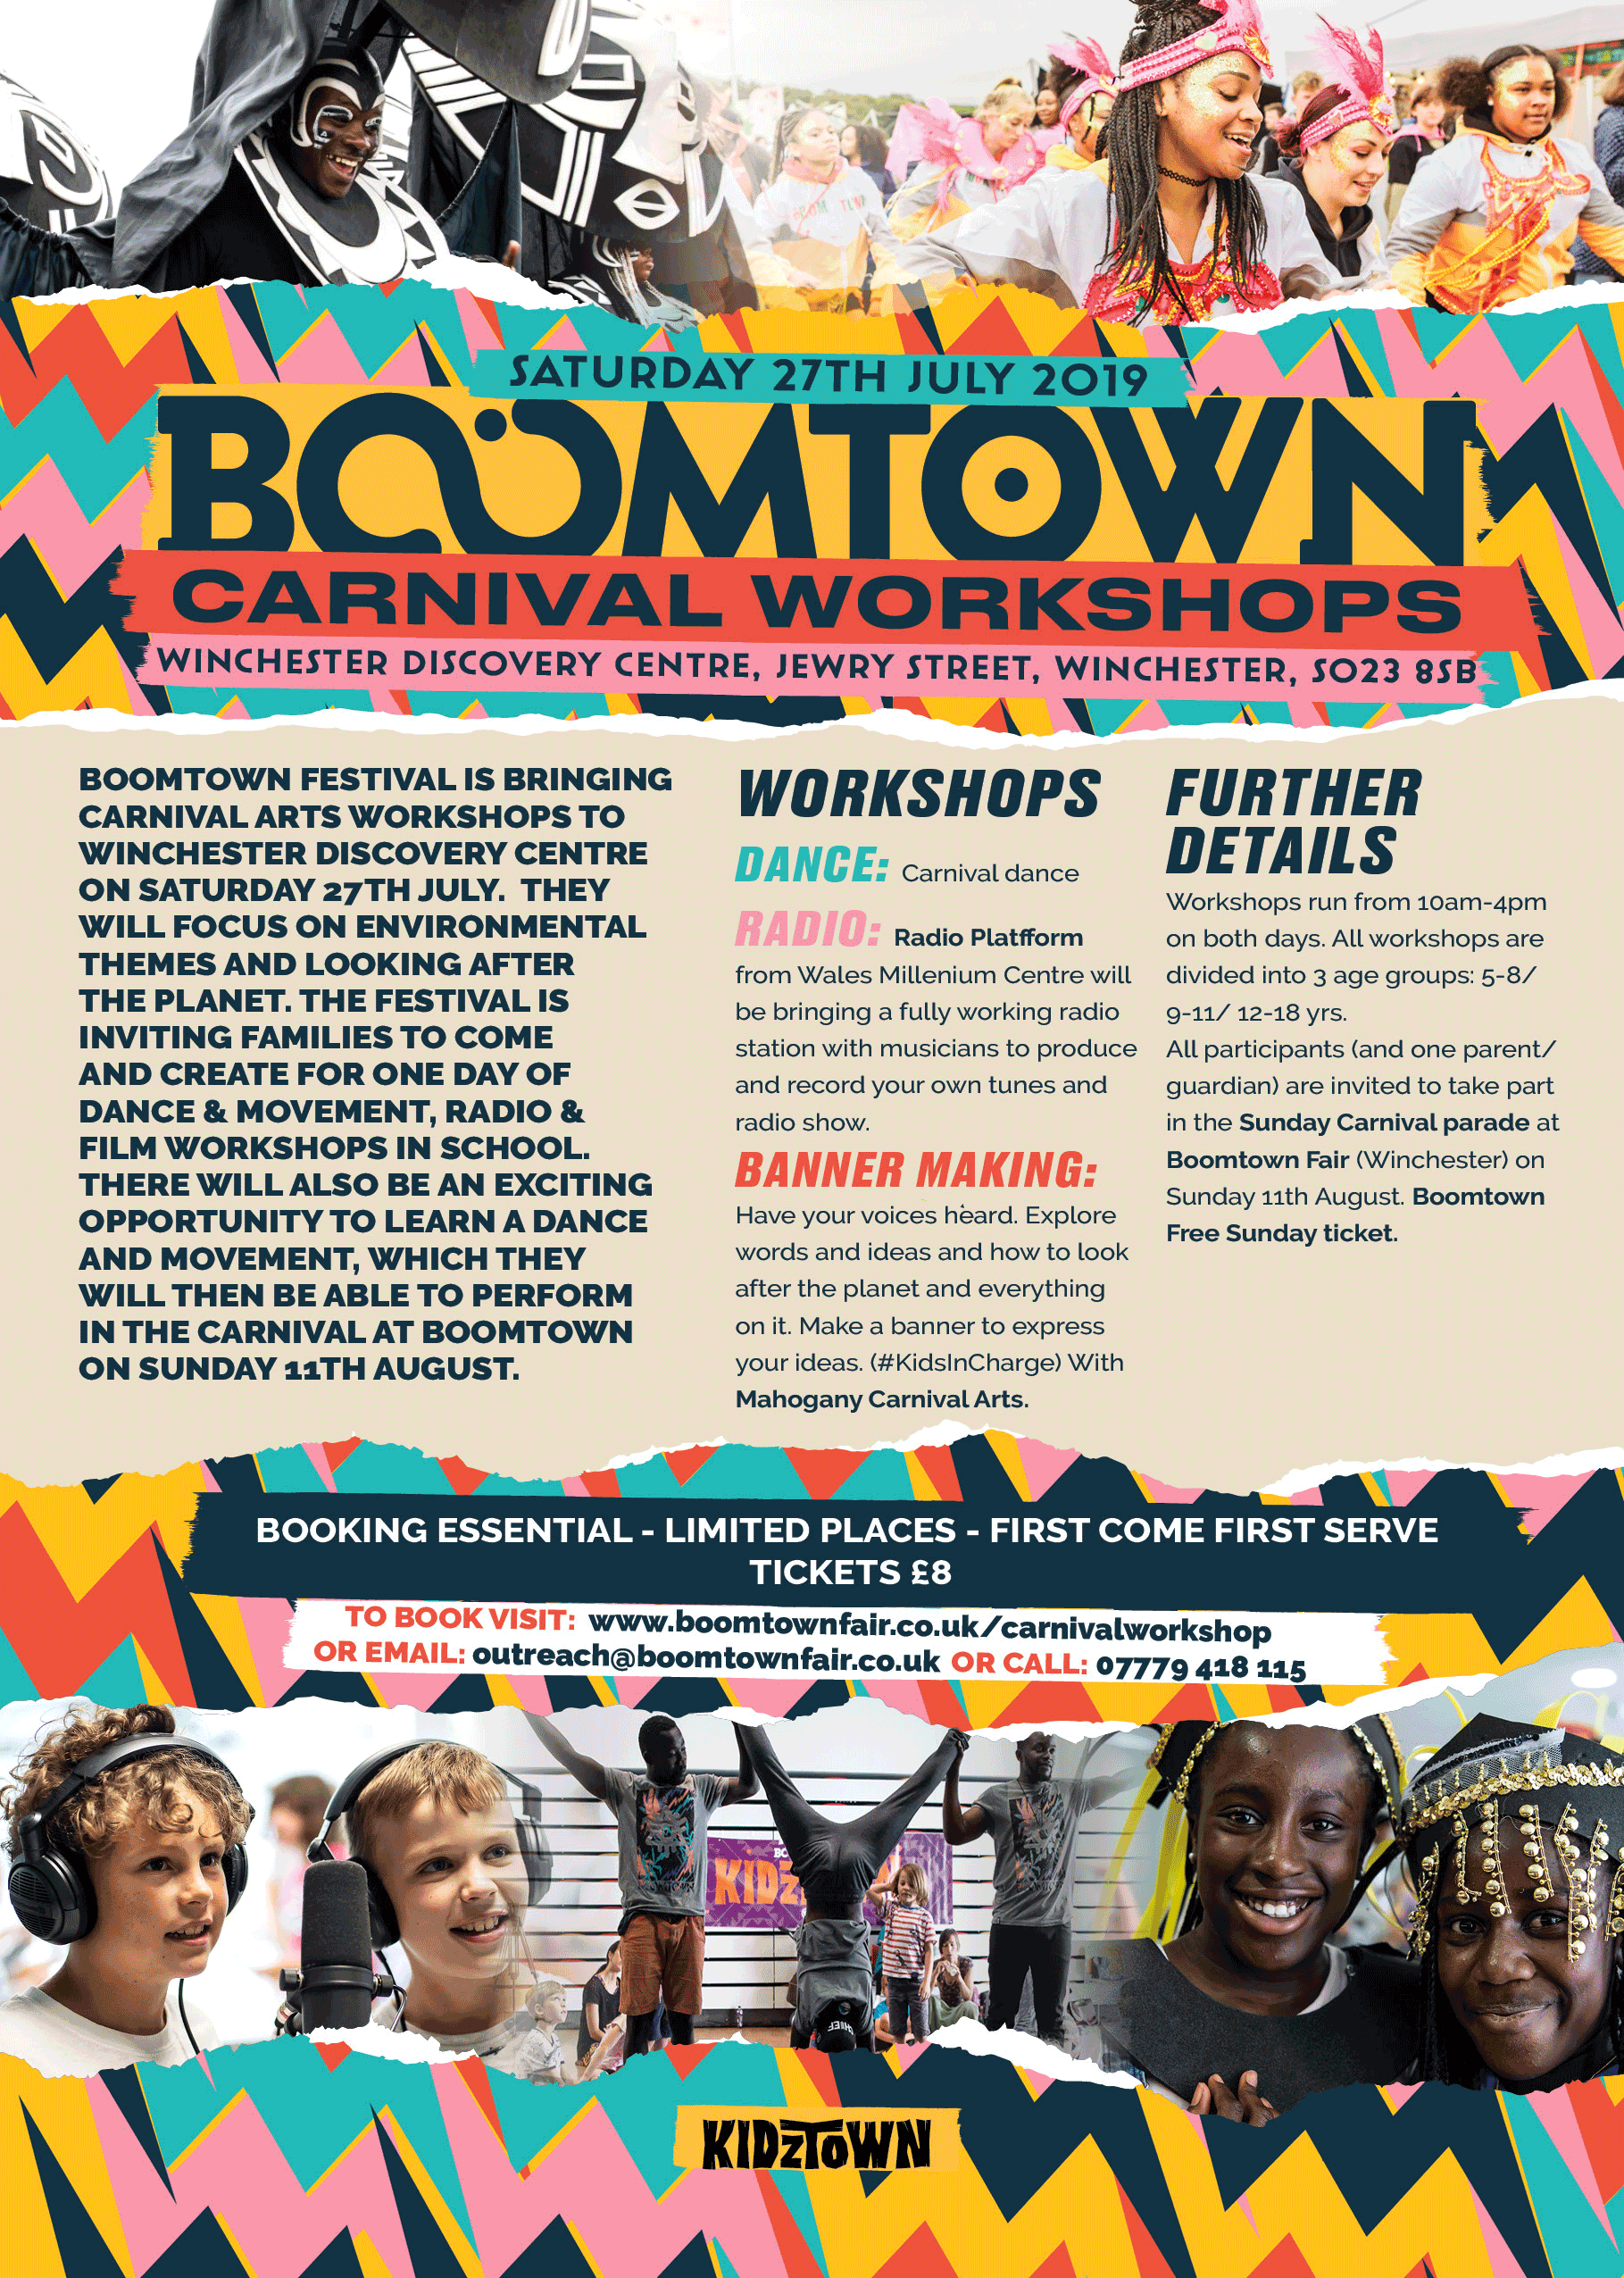 Carnival Workshops 27th July 2019 - WINCHESTER DISCOVERY CENTERWe are excited to announce we have collaborated once again with Boomtown Kidztown to produce these Community workshops in Winchester. Giving hundreds of local people the chance to take part in the mighty Carnival and special opening ceremony on the Lions Den stage at Boomtown Fair 2019! Come get involved if you are in the area!! More info:Website: https://www.boomtownfair.co.uk/beyond-boomtown/outreach/Email:outreach@boomtownfair.co.ukCall: 07779418115Booking essential-limited places-Tickest £8.00